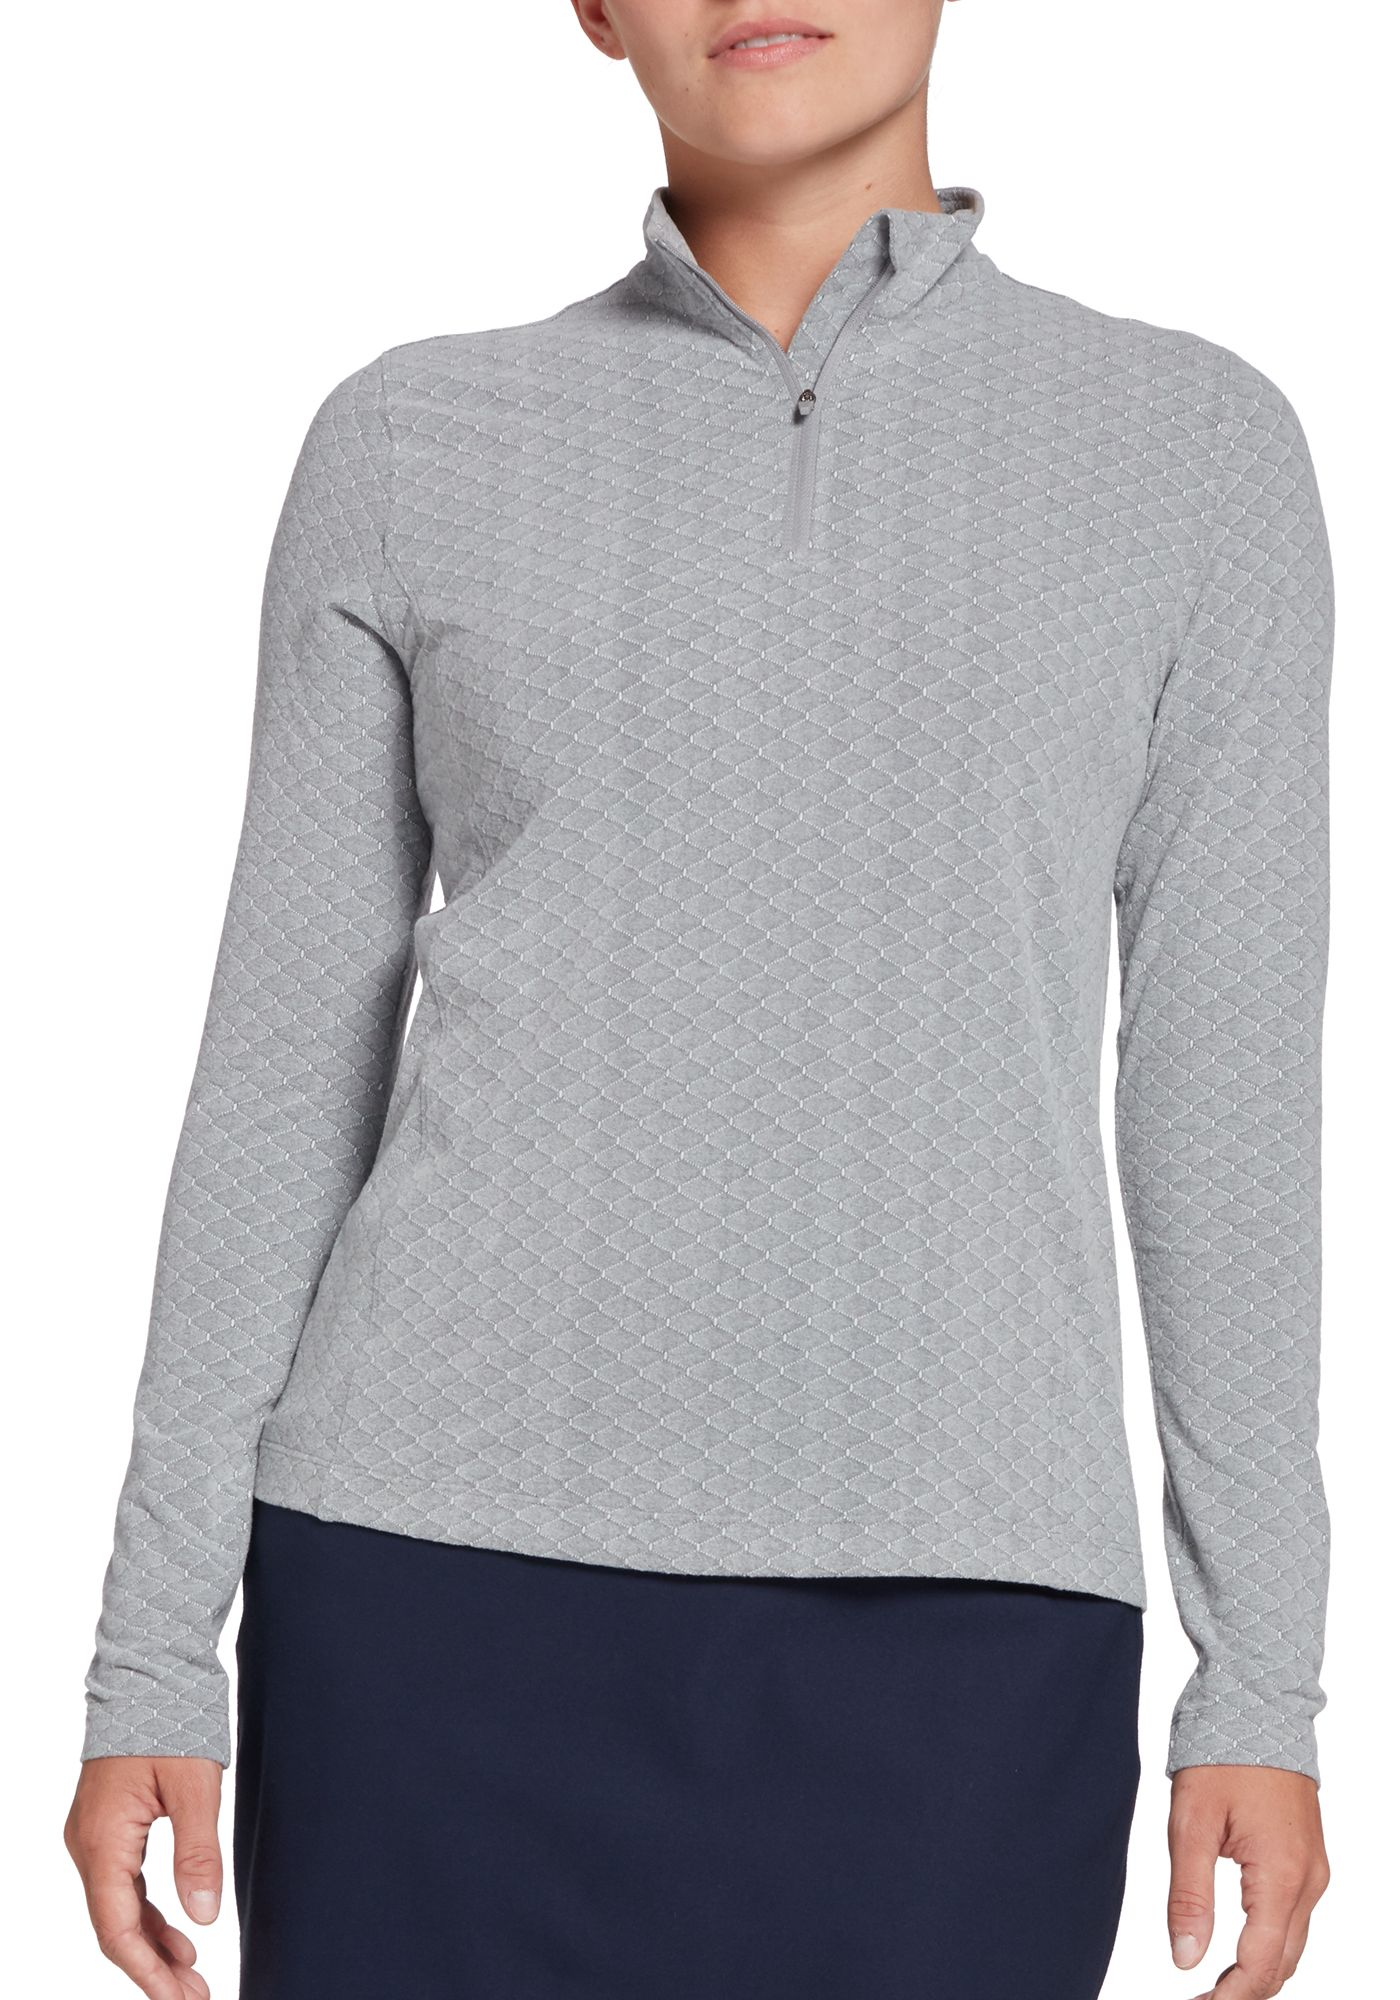 Lady Hagen Women's Diamond Texture ¼-Zip Golf Pullover